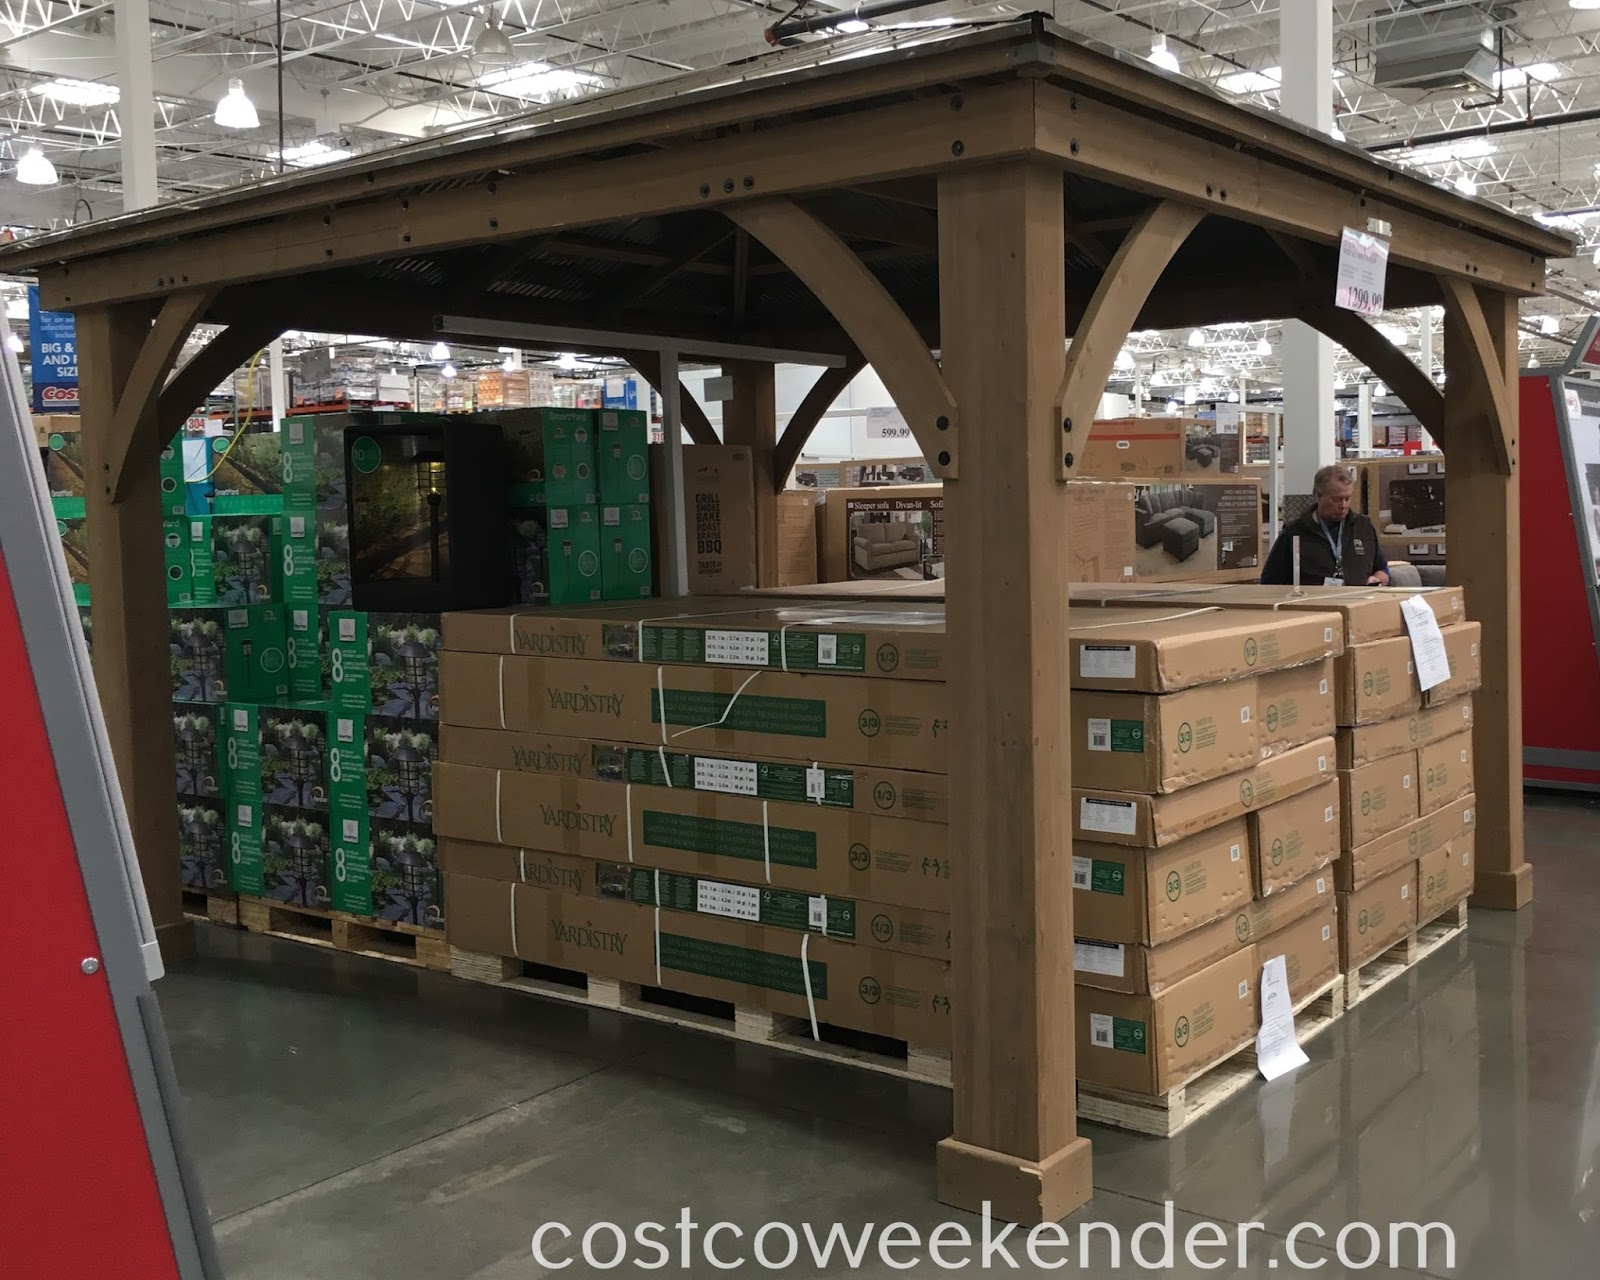 Yardistry 12' x 14' Cedar Wood Gazebo with Aluminum Roof | Costco Weekender